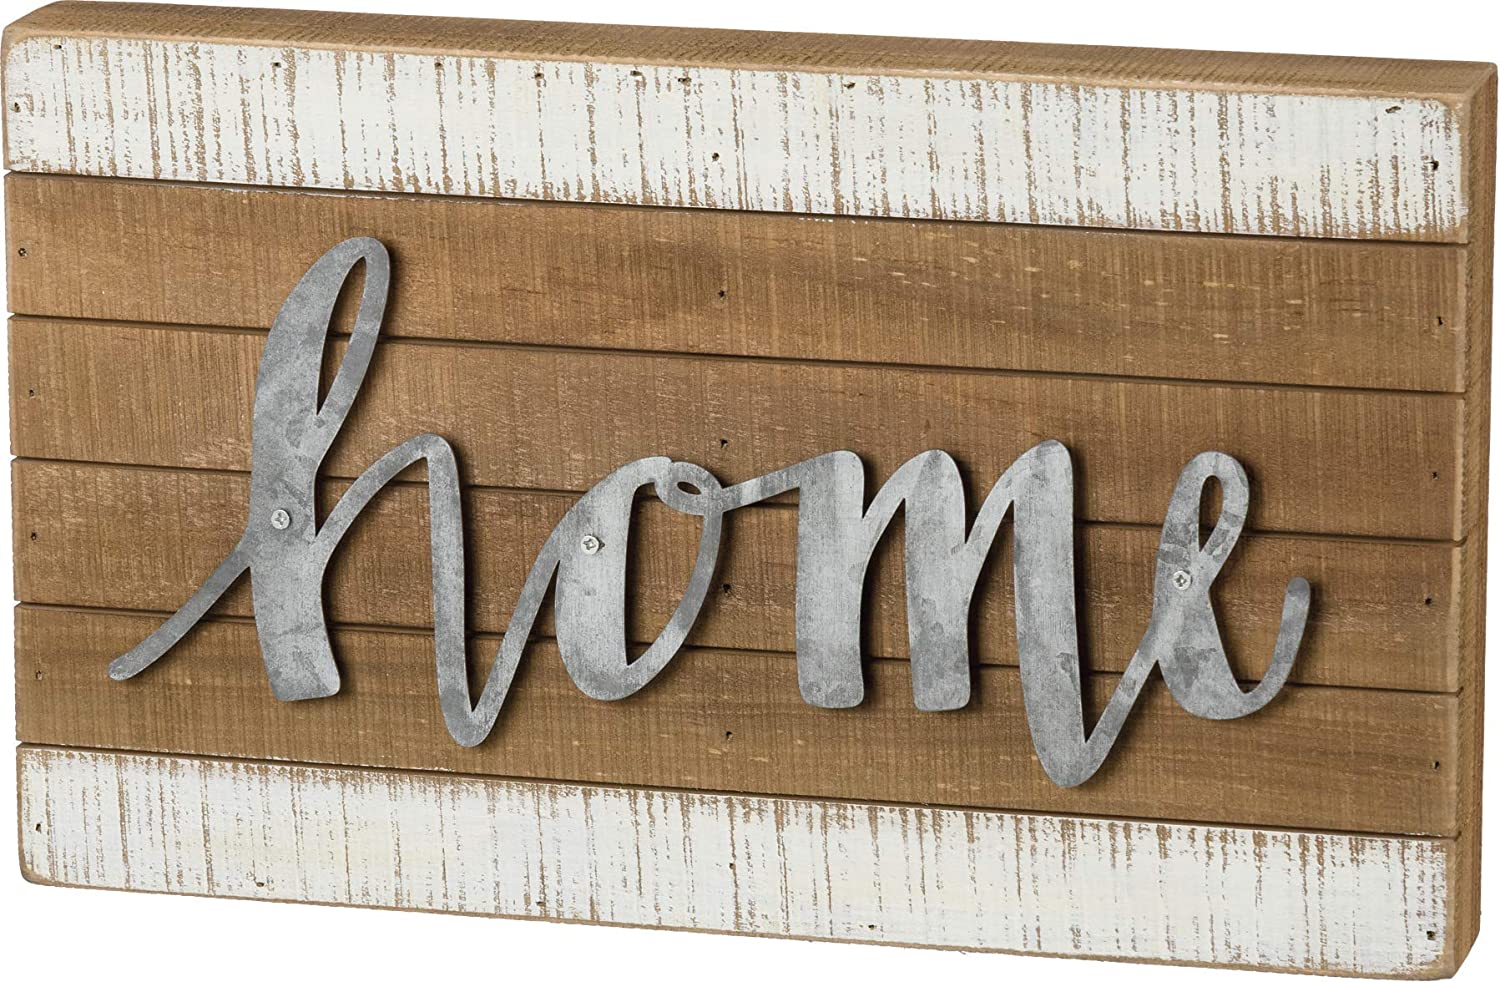 Primitives by Kathy Hand Lettered Slat Wood Box Sign, 15 x 9-Inches, Home